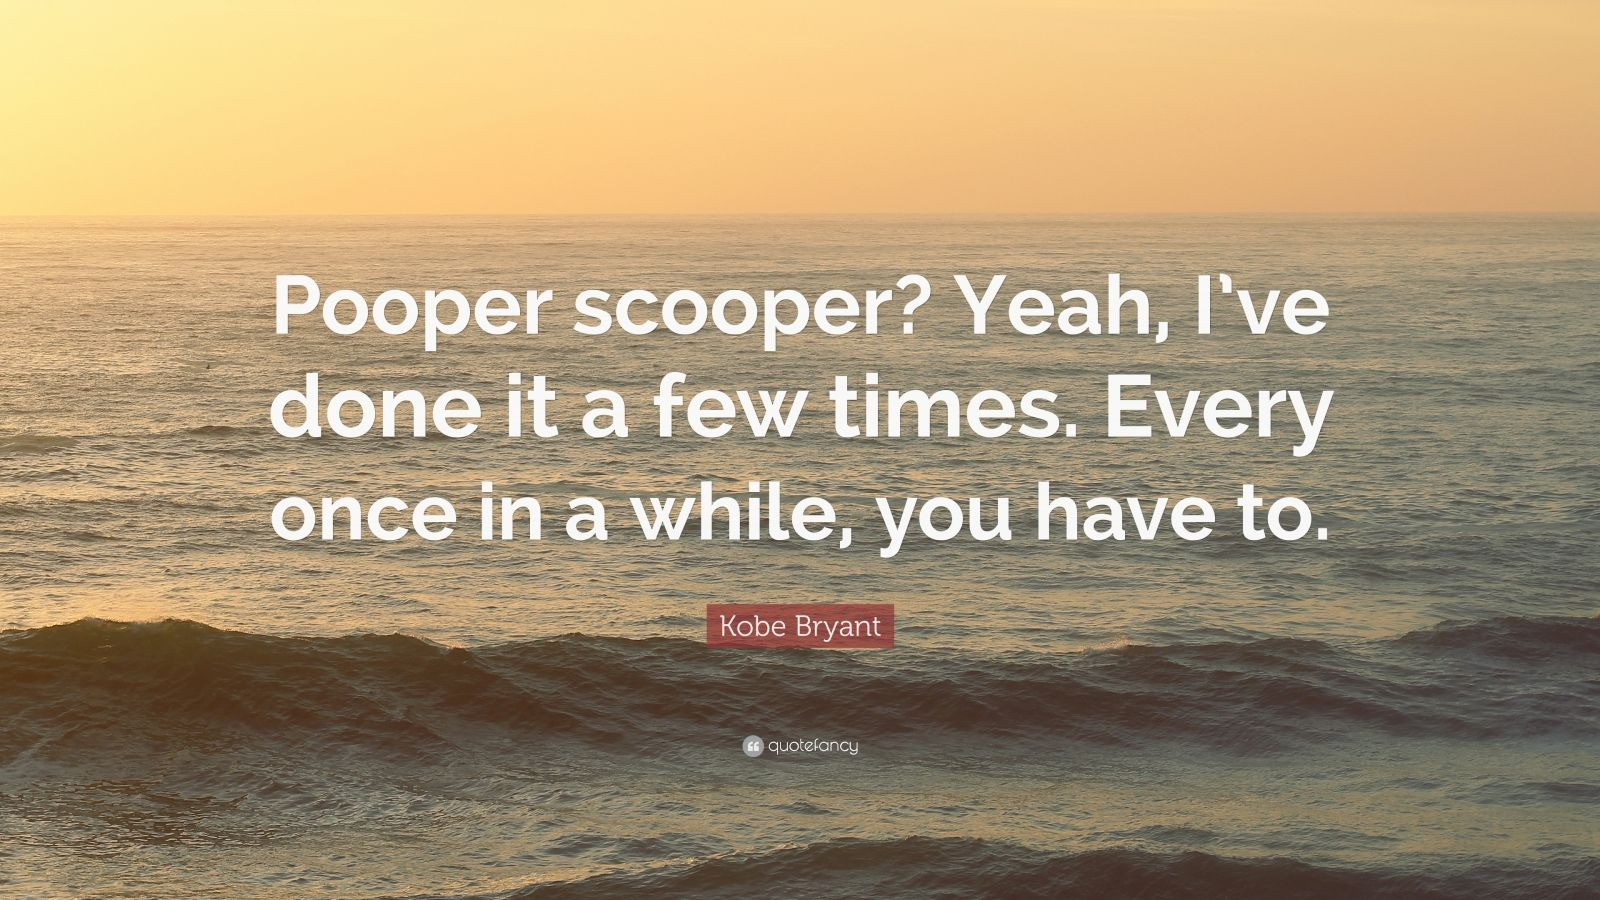 """Kobe Bryant Quote: """"Pooper scooper? Yeah, I've done it a few times. Every once in a while, you have to."""""""